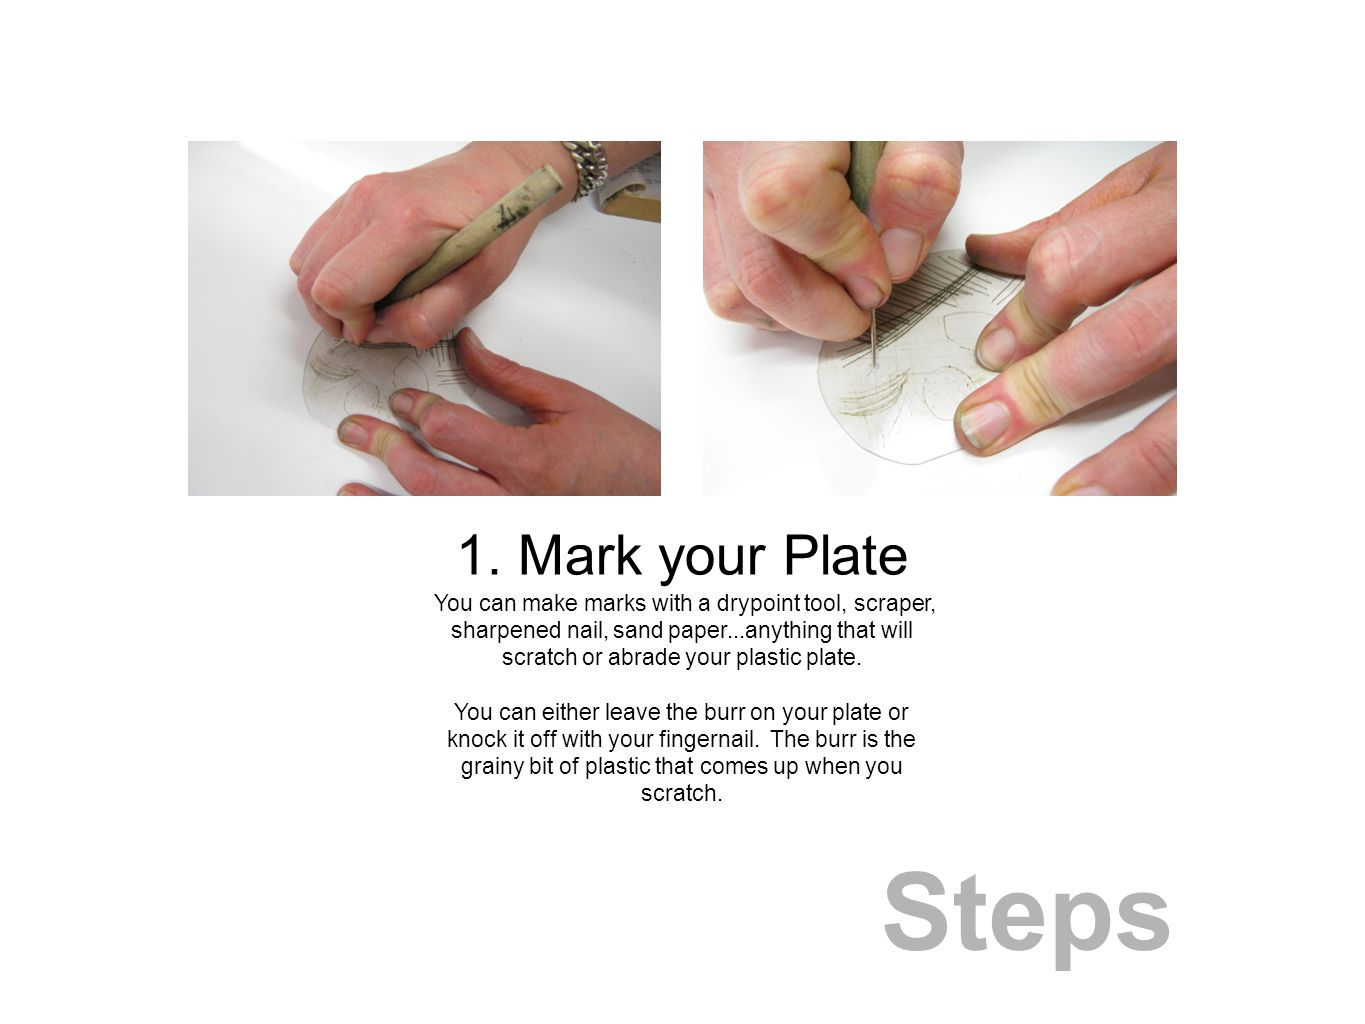 Steps You can make marks with a drypoint tool, scraper, sharpened nail, sand paper...anything that will scratch or abrade your plastic plate.